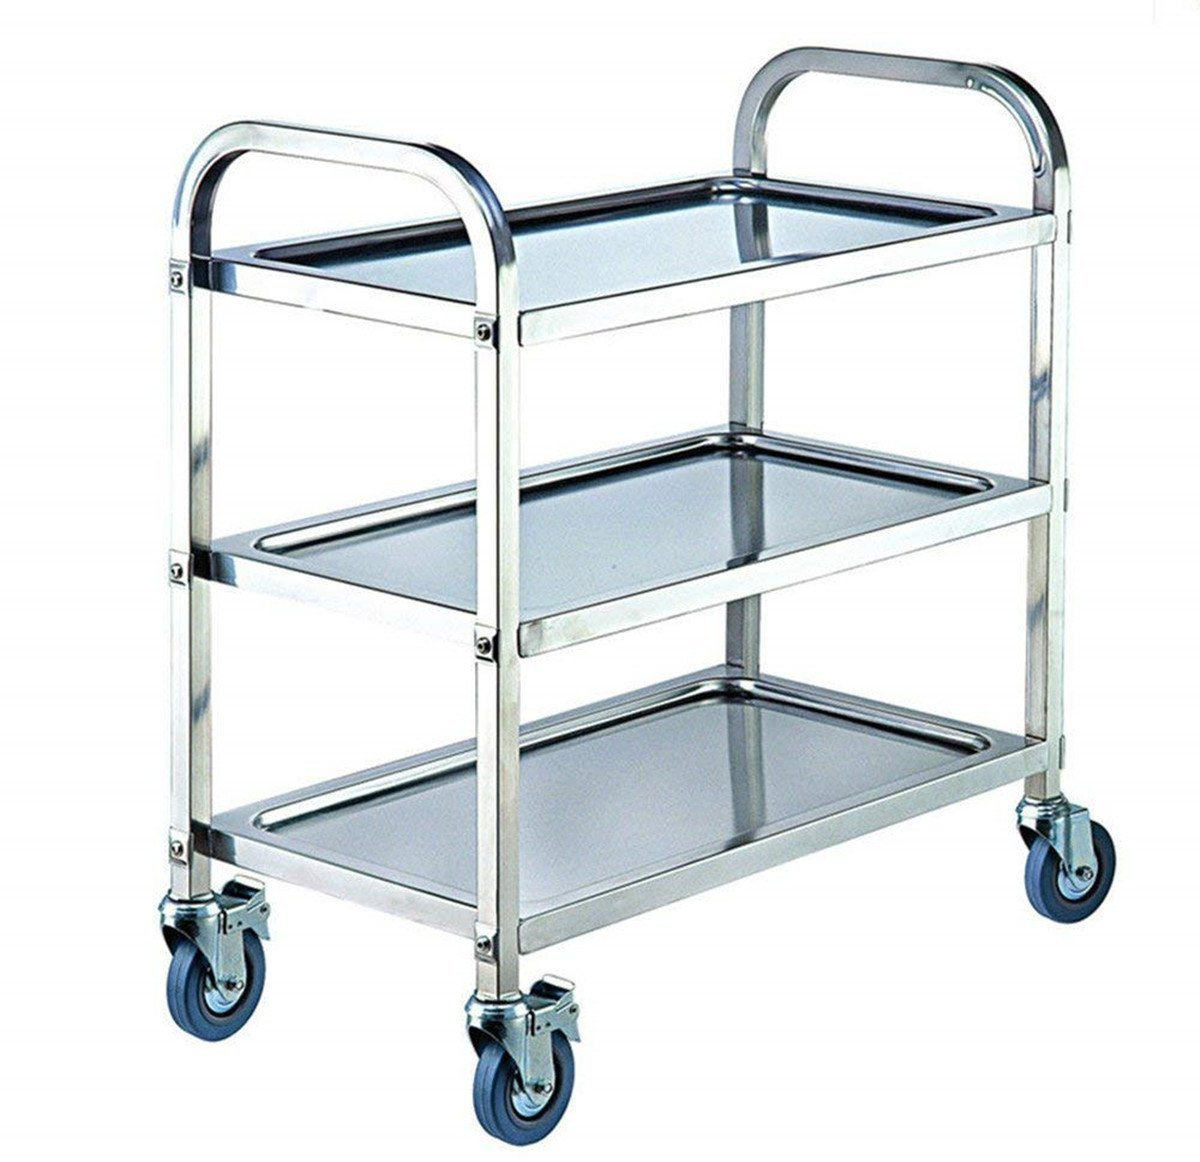 ybaymy 2 Tiers Rolling Trolley Cart Serving Rack Stainless Steel for ...